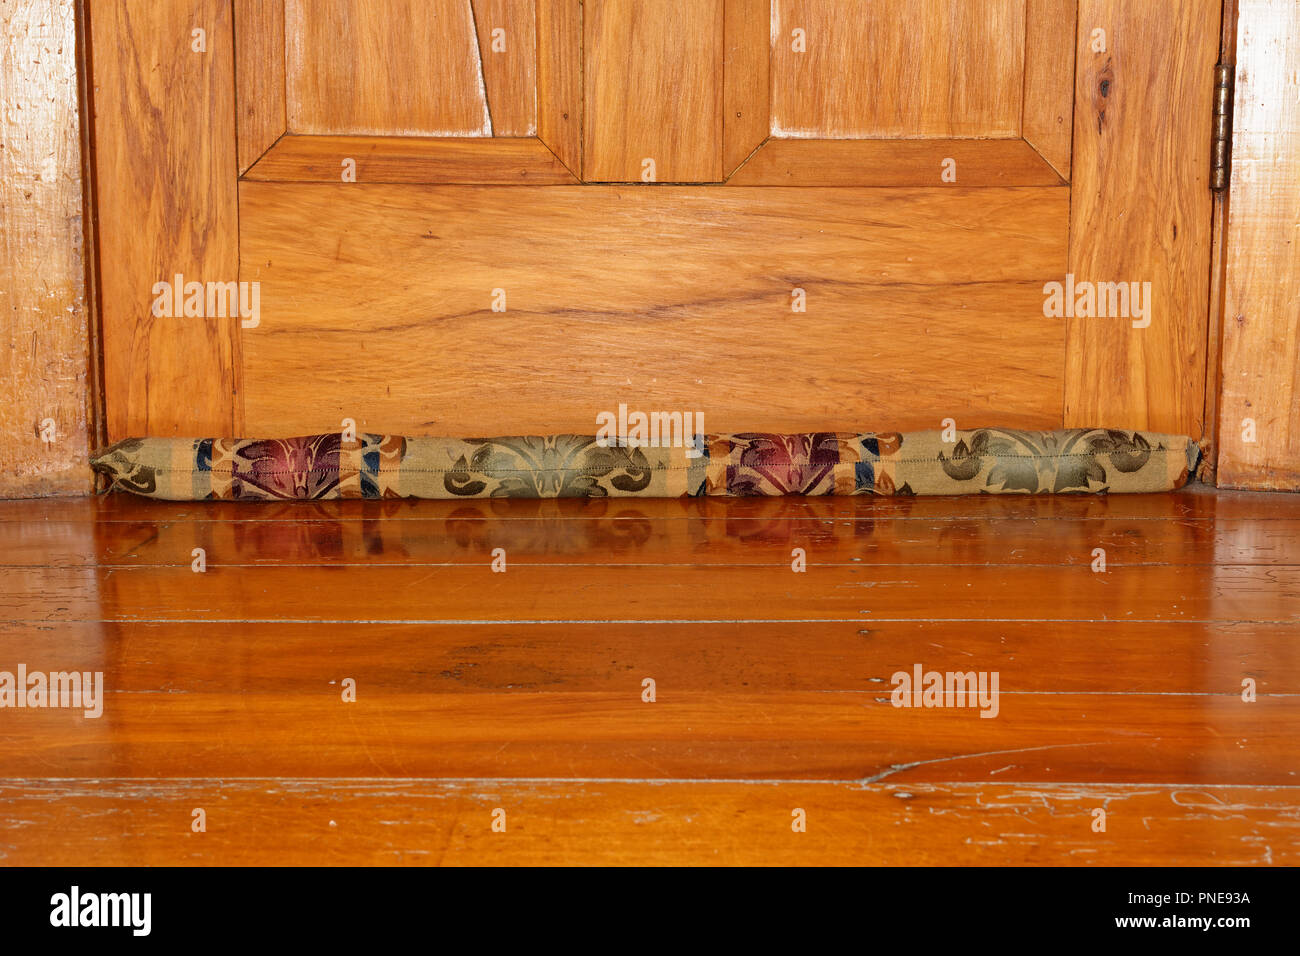 Draught excluders stop chilly draughts stealing your warmth - Stock Image